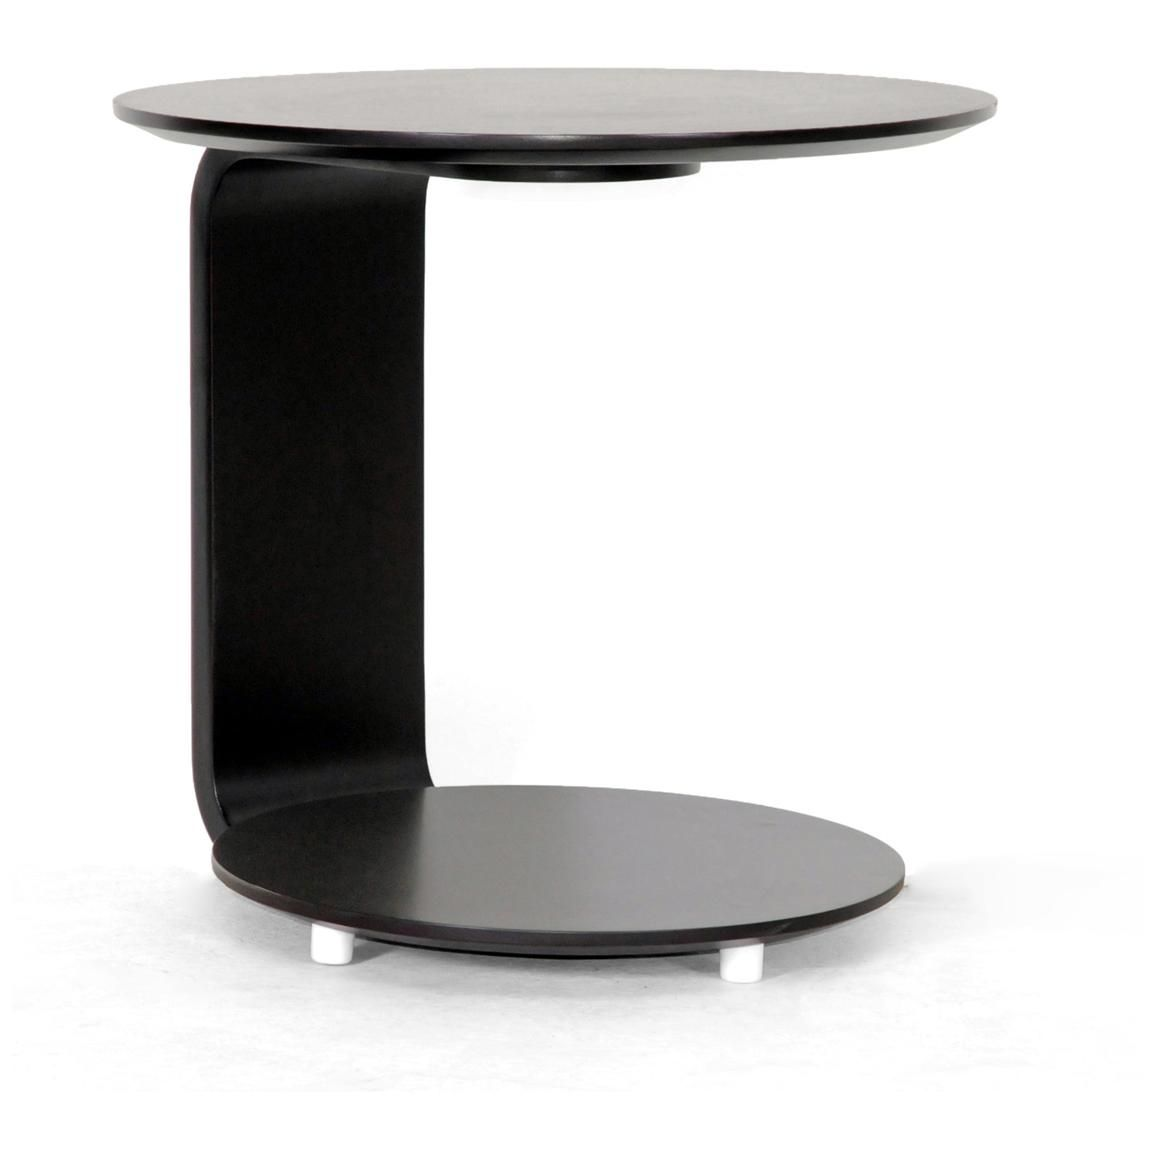 C Shaped Table For Sofa C Shaped Table For Sofa Oware Info